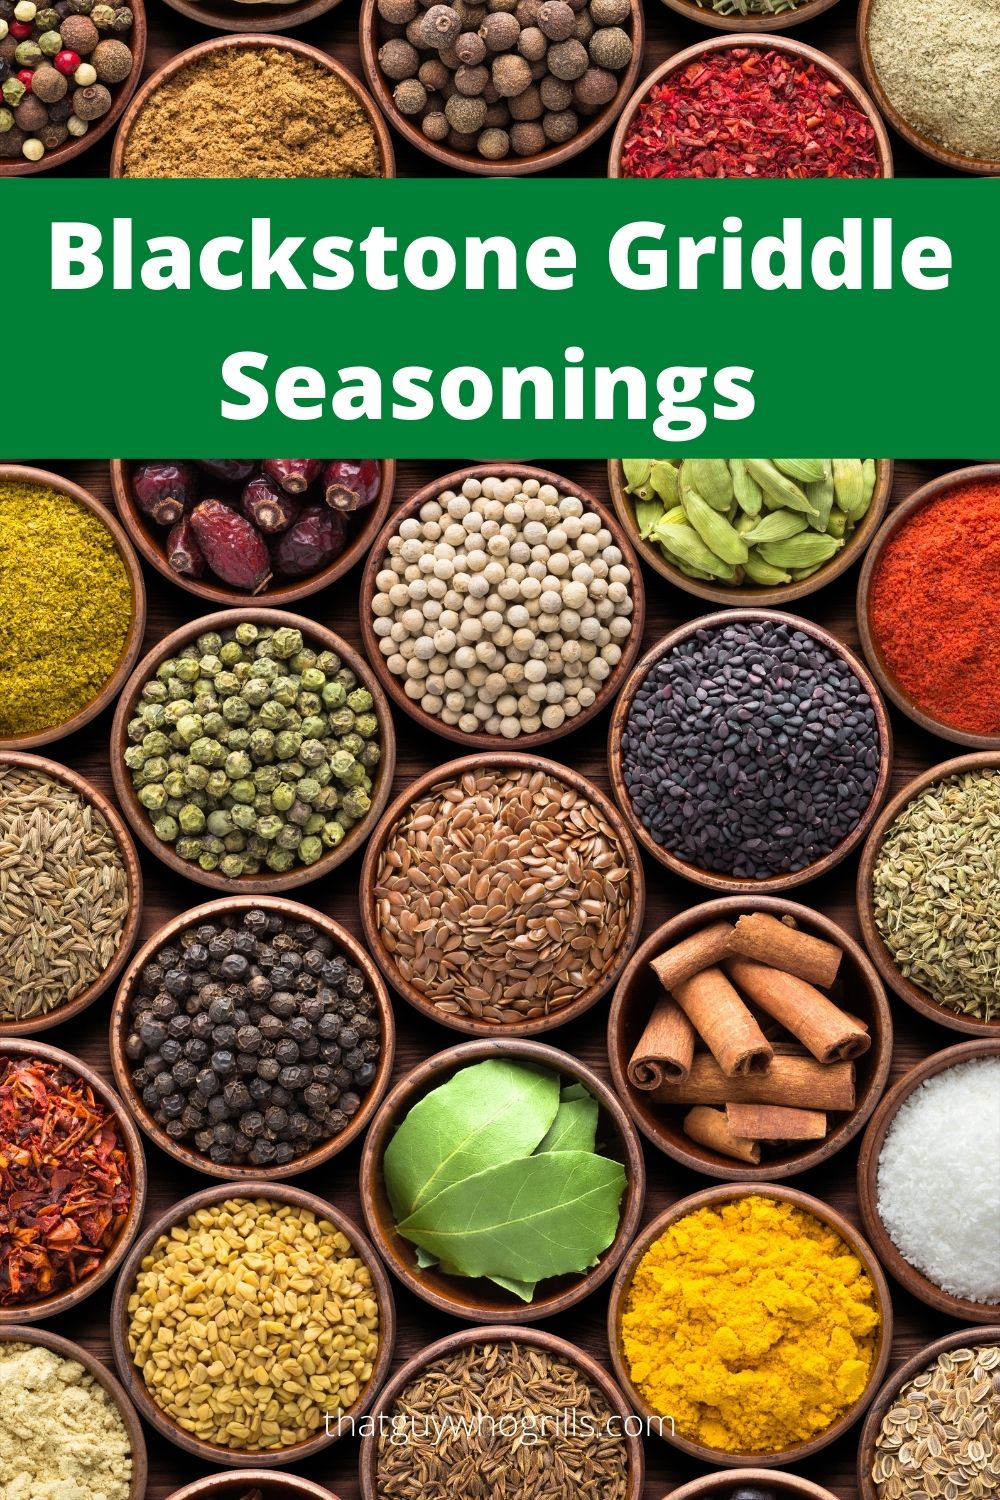 Blackstone Seasonings To Take Your Cooking To The Next Level! Using seasonings is the perfect way to add flavor to any dinner cooked on a Blackstone Griddle!